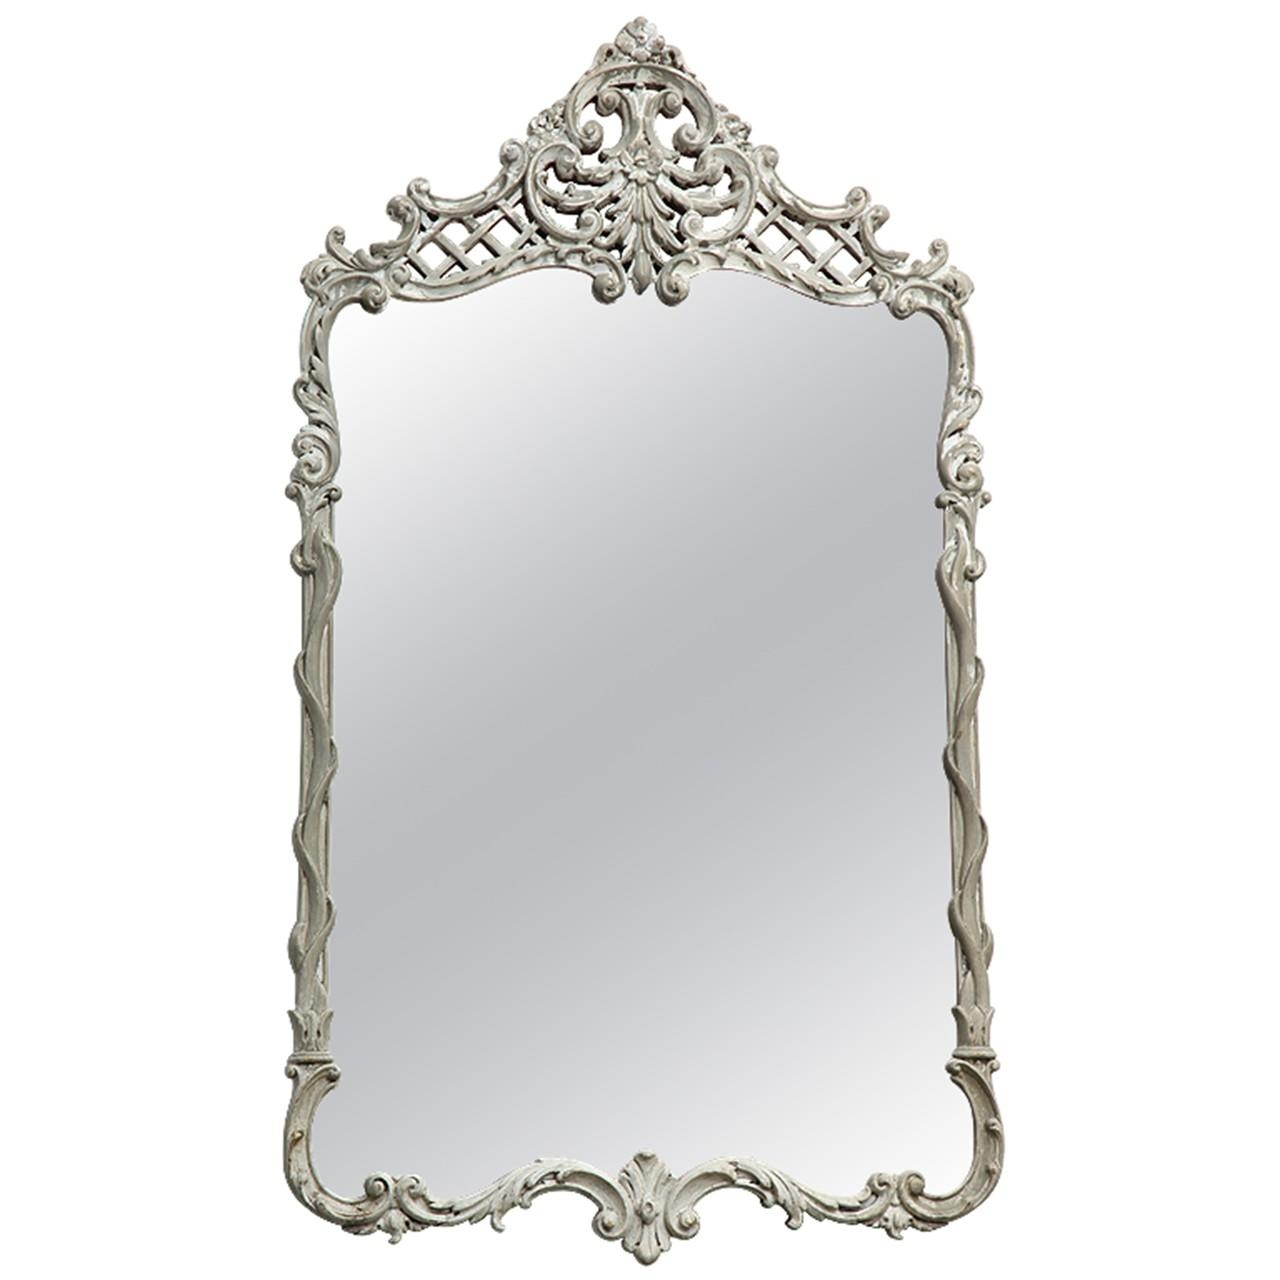 French Rococo Mirror – Prudence Designs & Events | Prudence Inside French Rococo Mirror (Image 13 of 20)